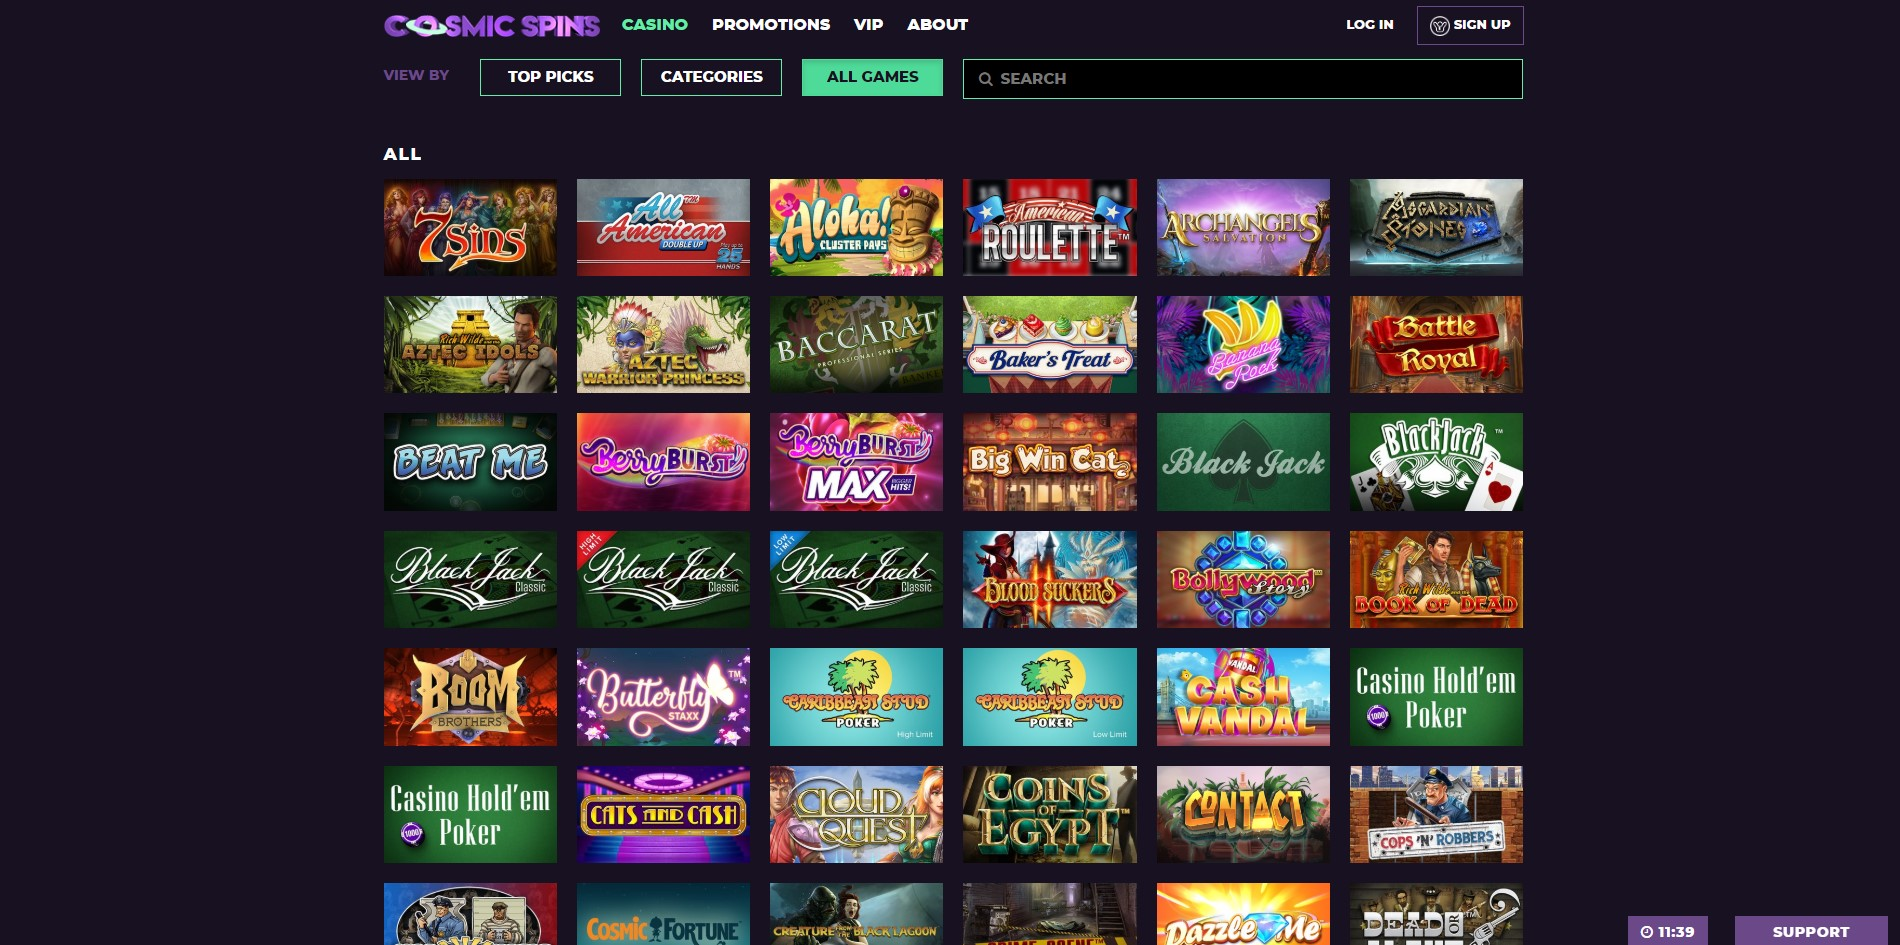 Cosmic Spins Casino Review Safe Or Scam